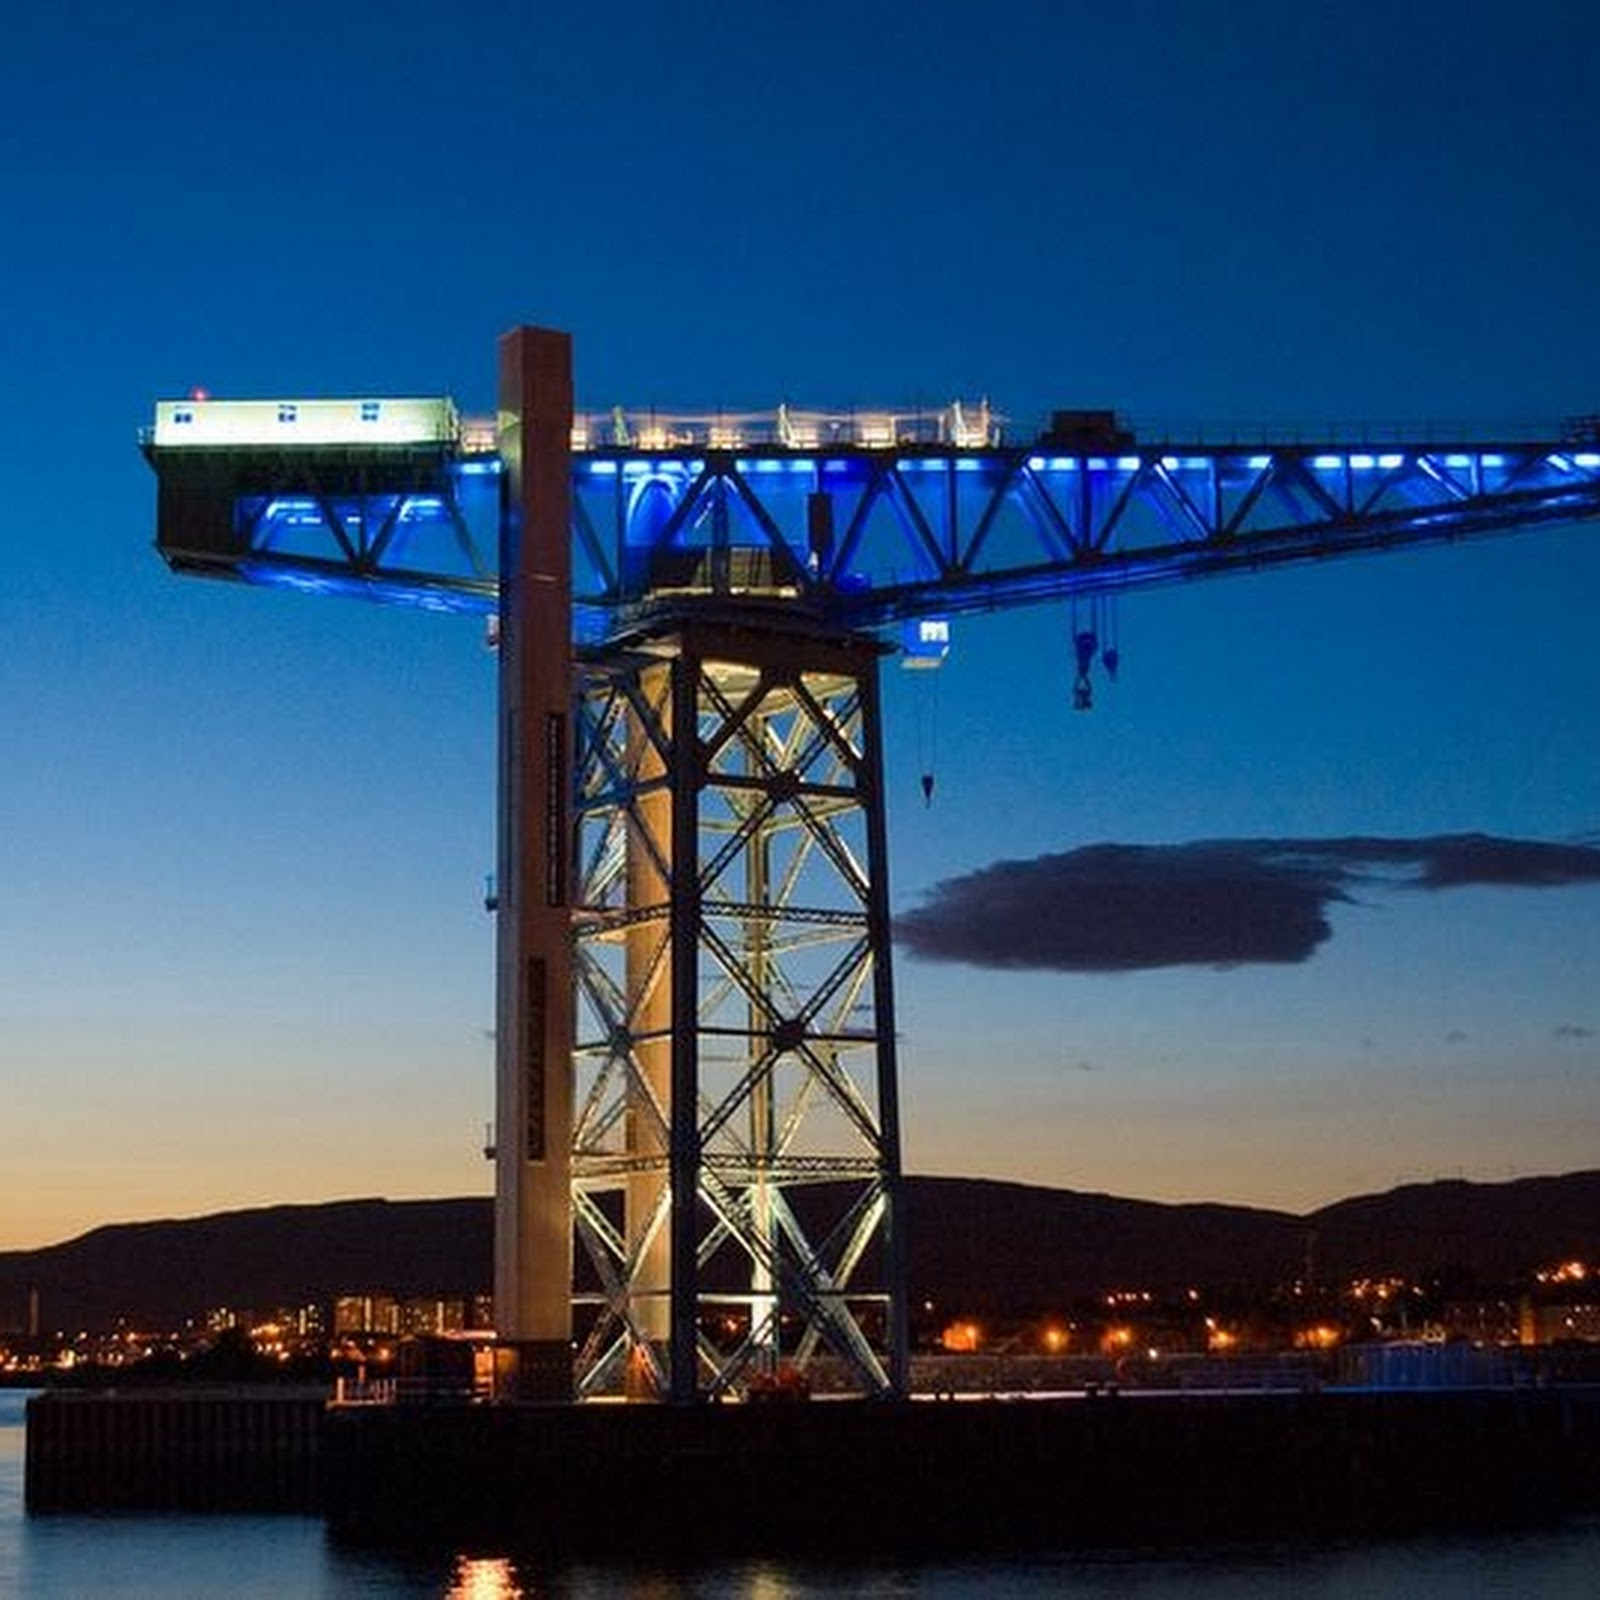 Titan Clydebank: An Industrial Crane, Now Scotland's Unique Attraction